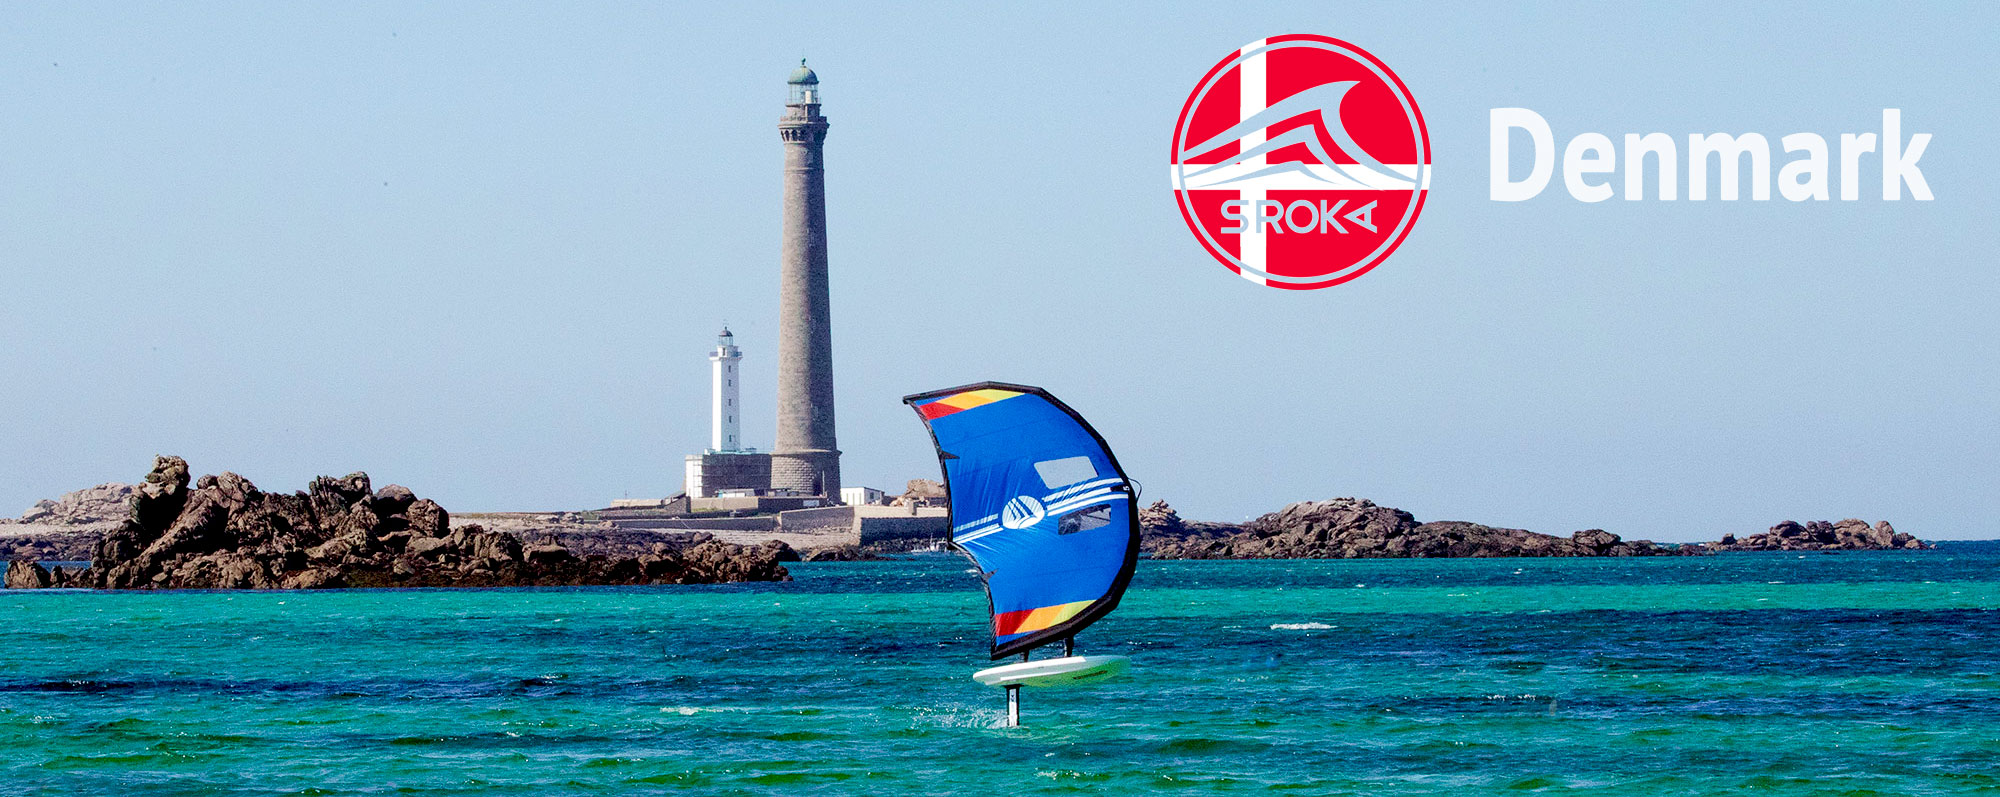 Buy a wing foil in Denmark, a surf foil, a SUP foil, a kite foil, a wind foil or a stand-up paddle.